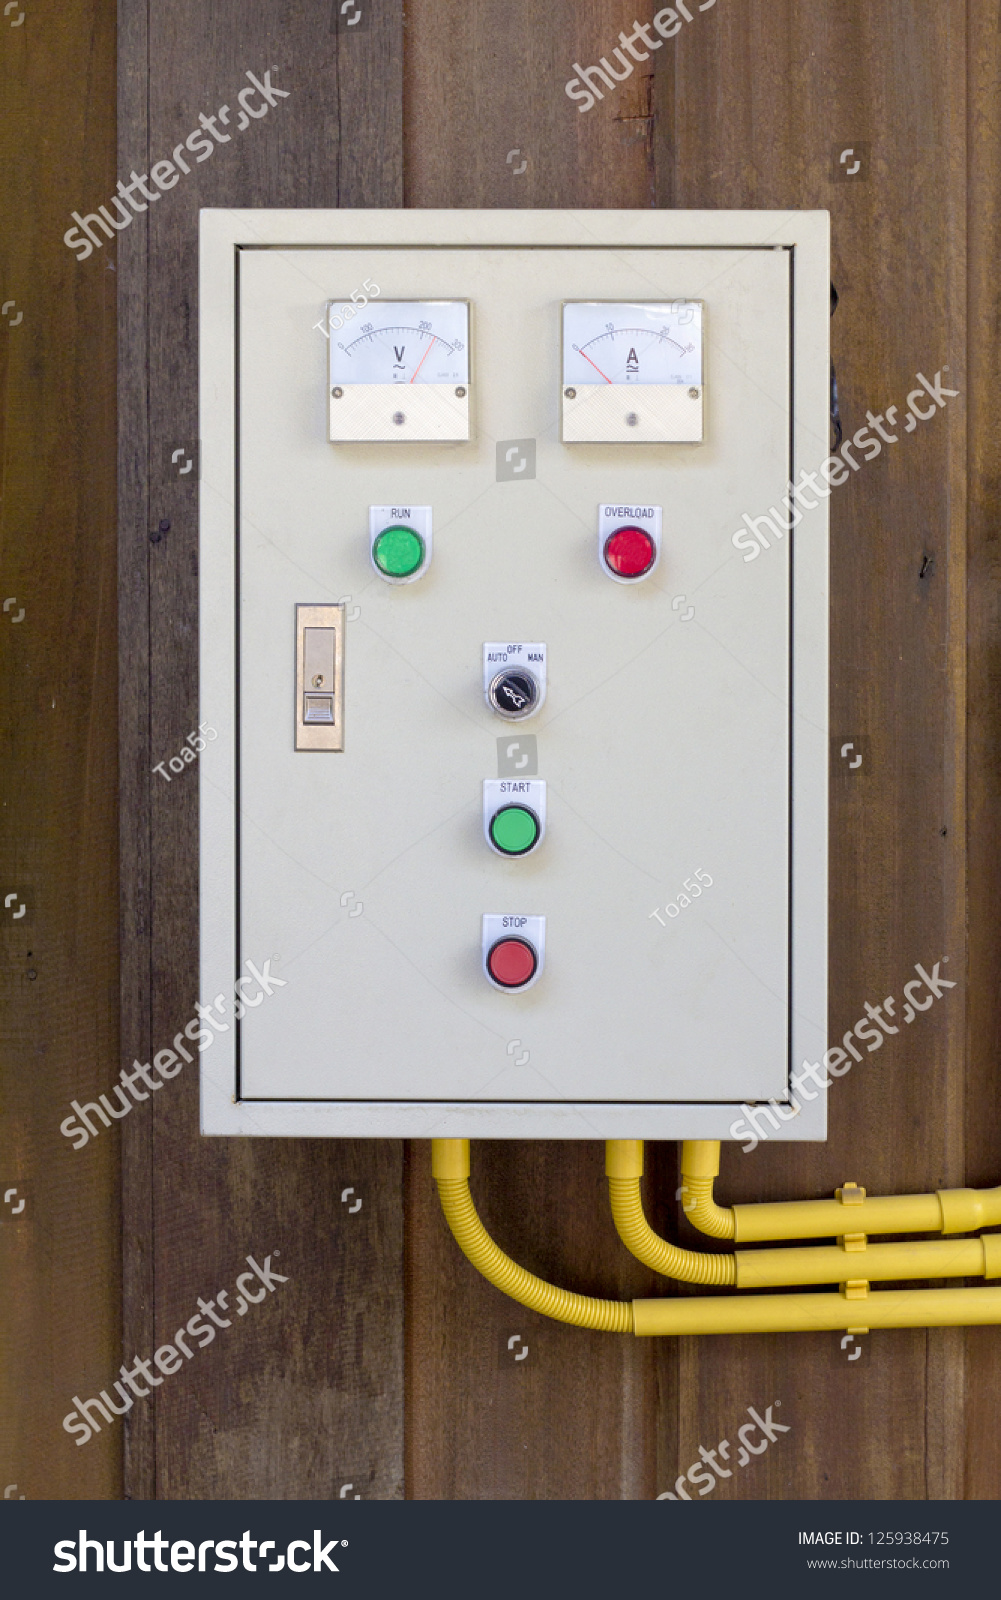 Old Electric Control Box On Wooden Stock Photo (Edit Now) 125938475 ...